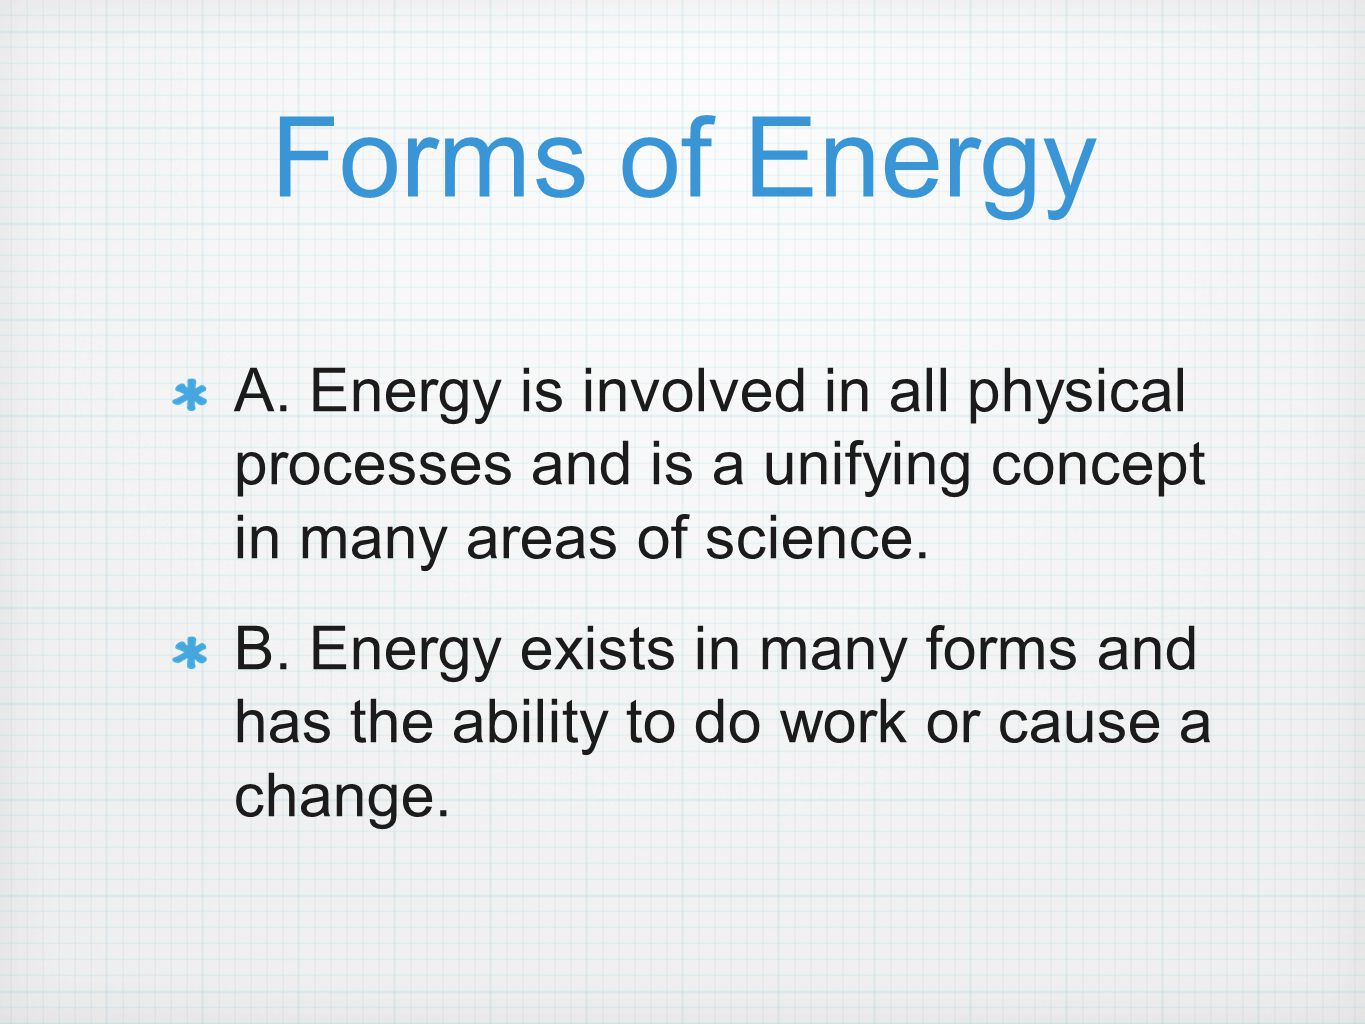 Forms of Energy A. Energy is involved in all physical processes and is a unifying concept in many areas of science. B. Energy exists in many forms and